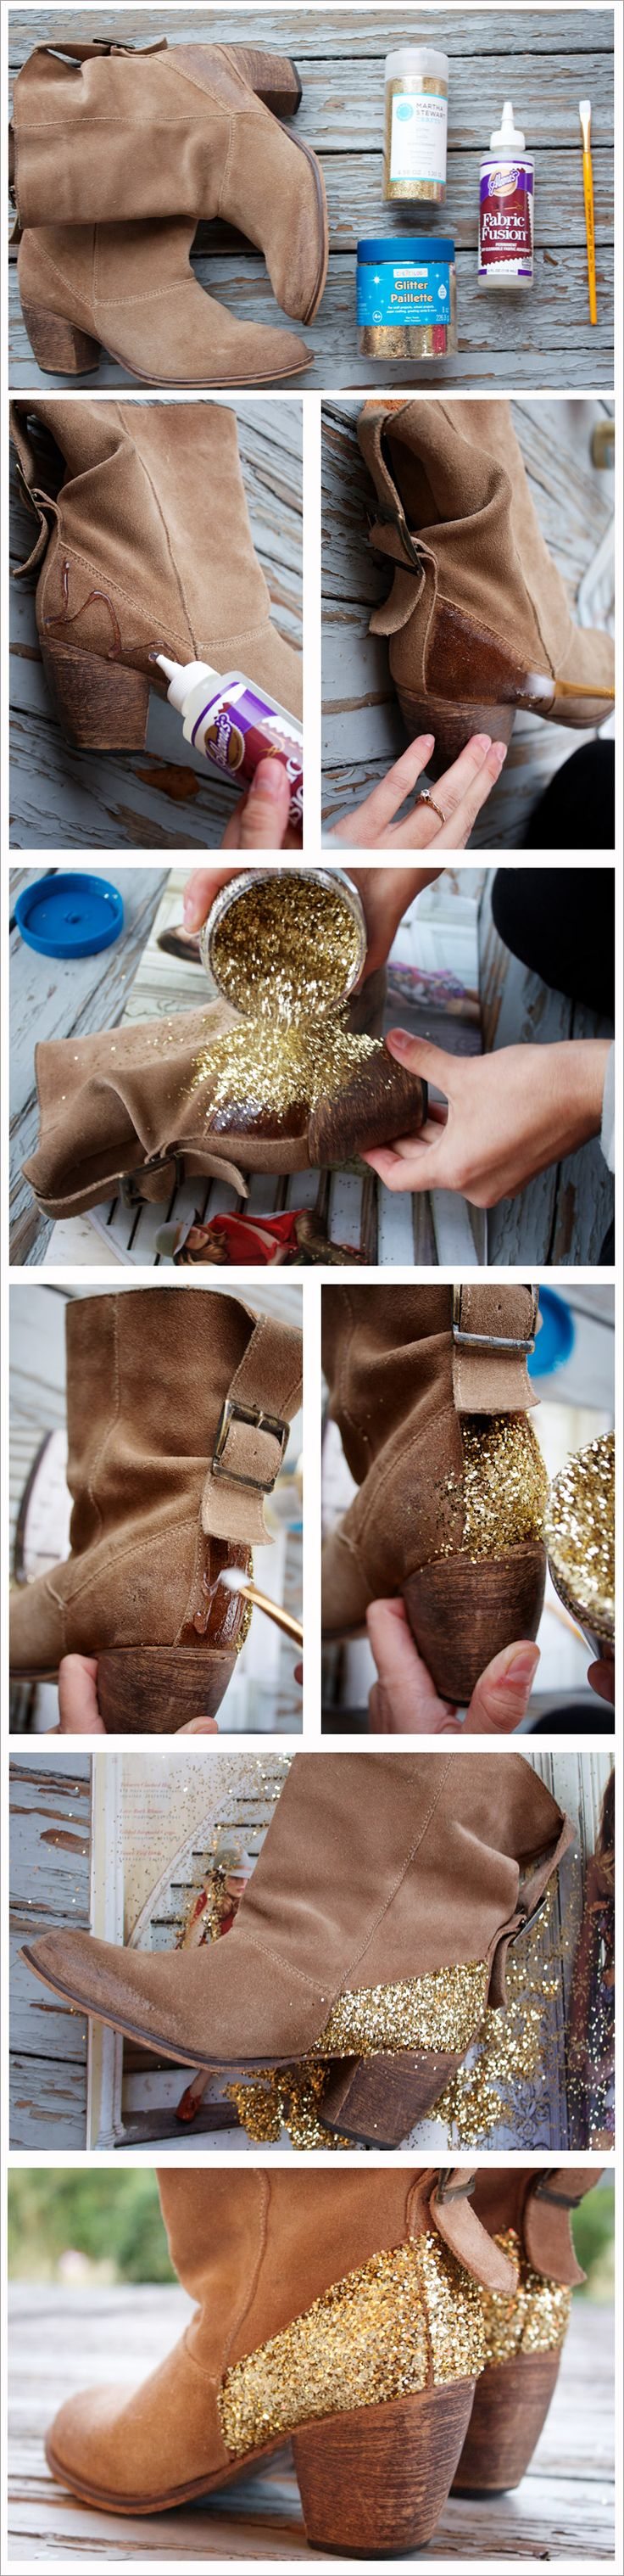 12 DIY Day's of Christmas: Day 2 Lindsey Lowe's Fabulous Glittery Boots http://kellymoorebag.com/blog/?p=8889